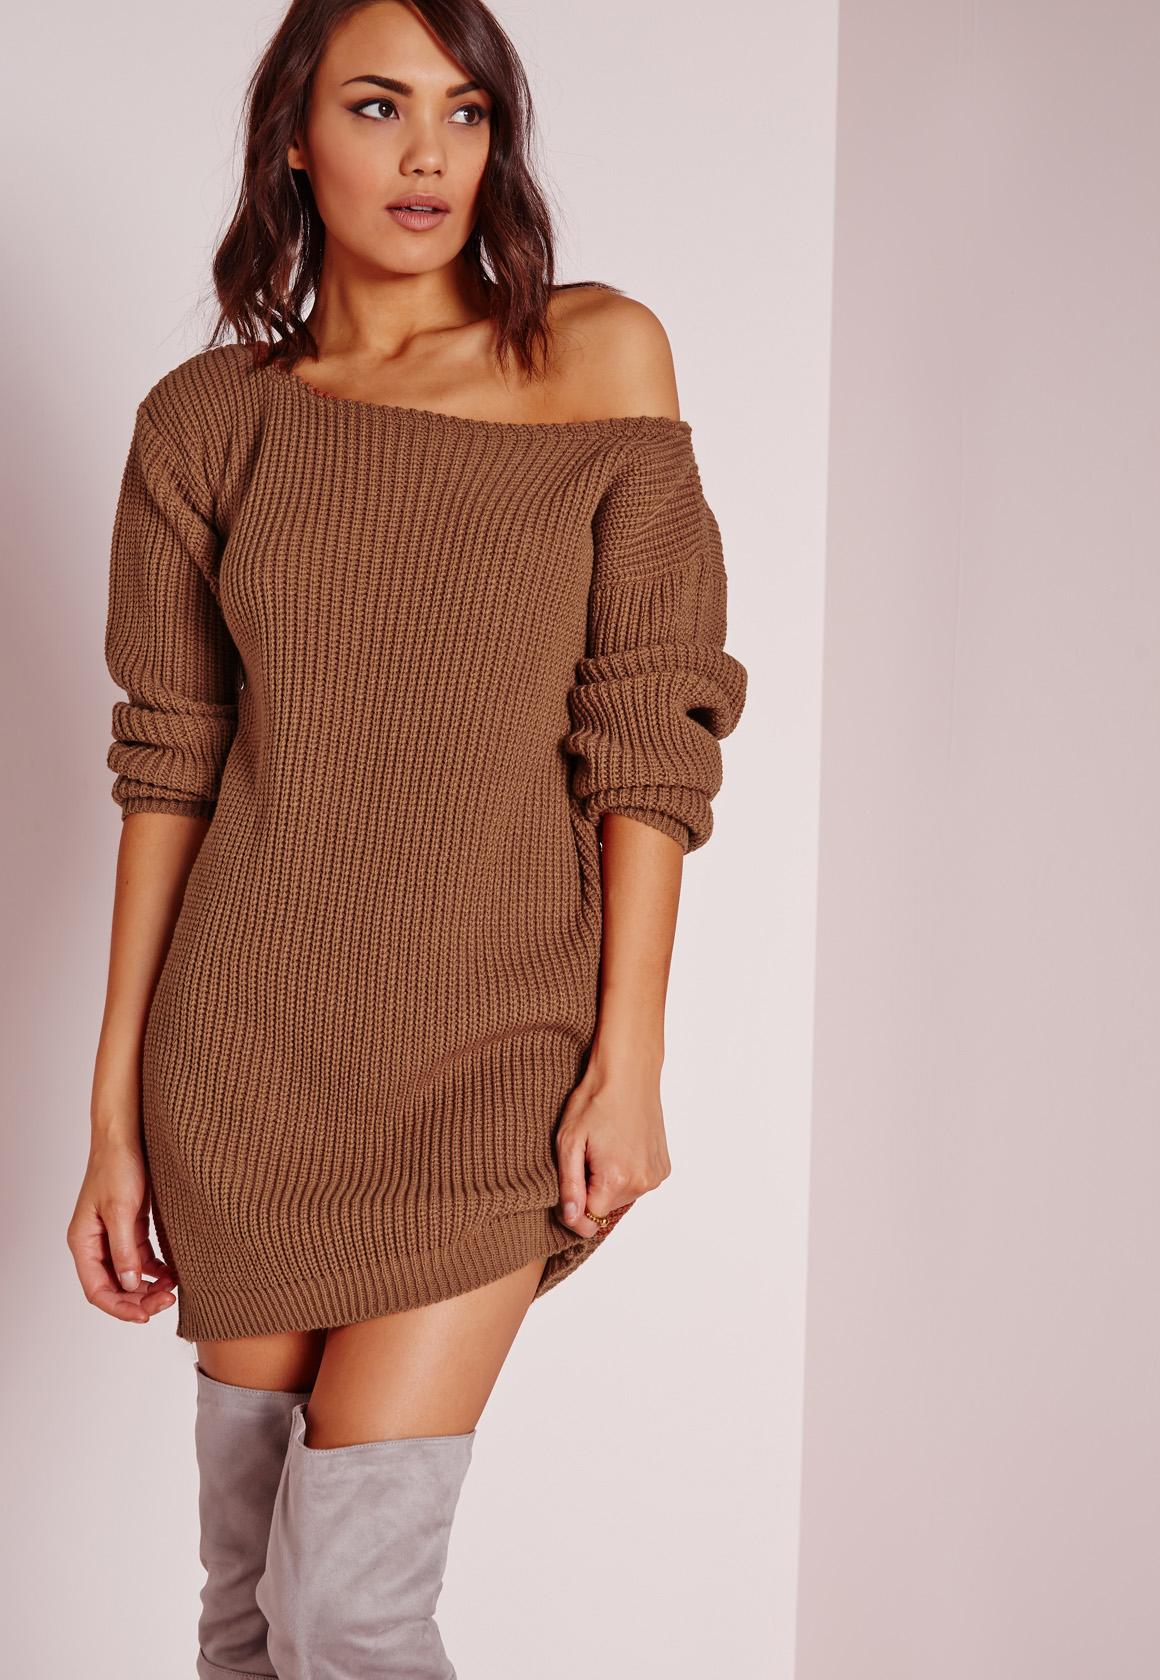 Free Shipping Pay With Paypal Missguided Beige Off Shoulder Knitted Jumper Sale Footaction j6Nnj16